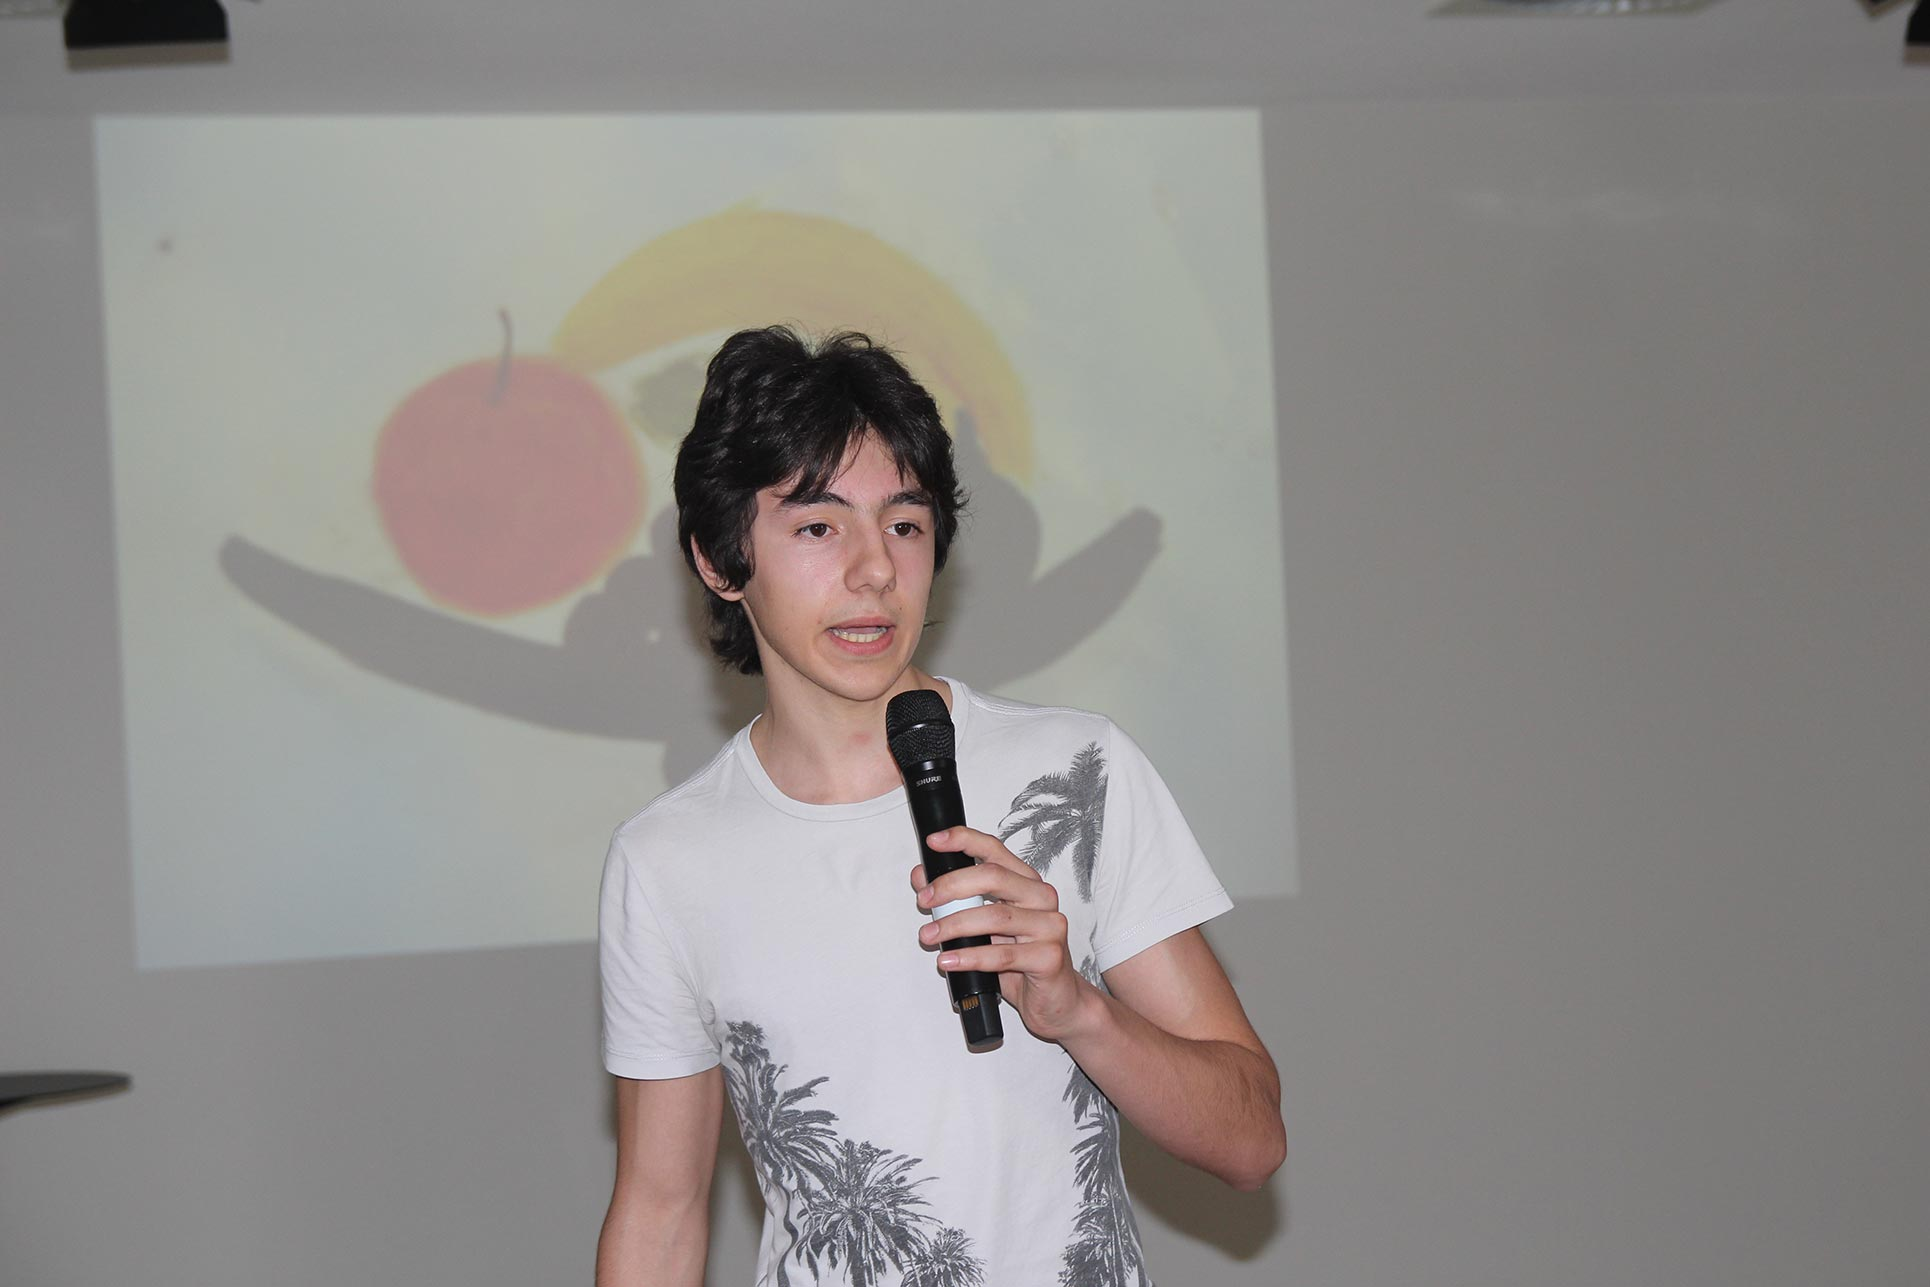 A pupil of the high school presents his knowledge about Caravaggio's fruit bowl (Photo: Barbara Fässler)